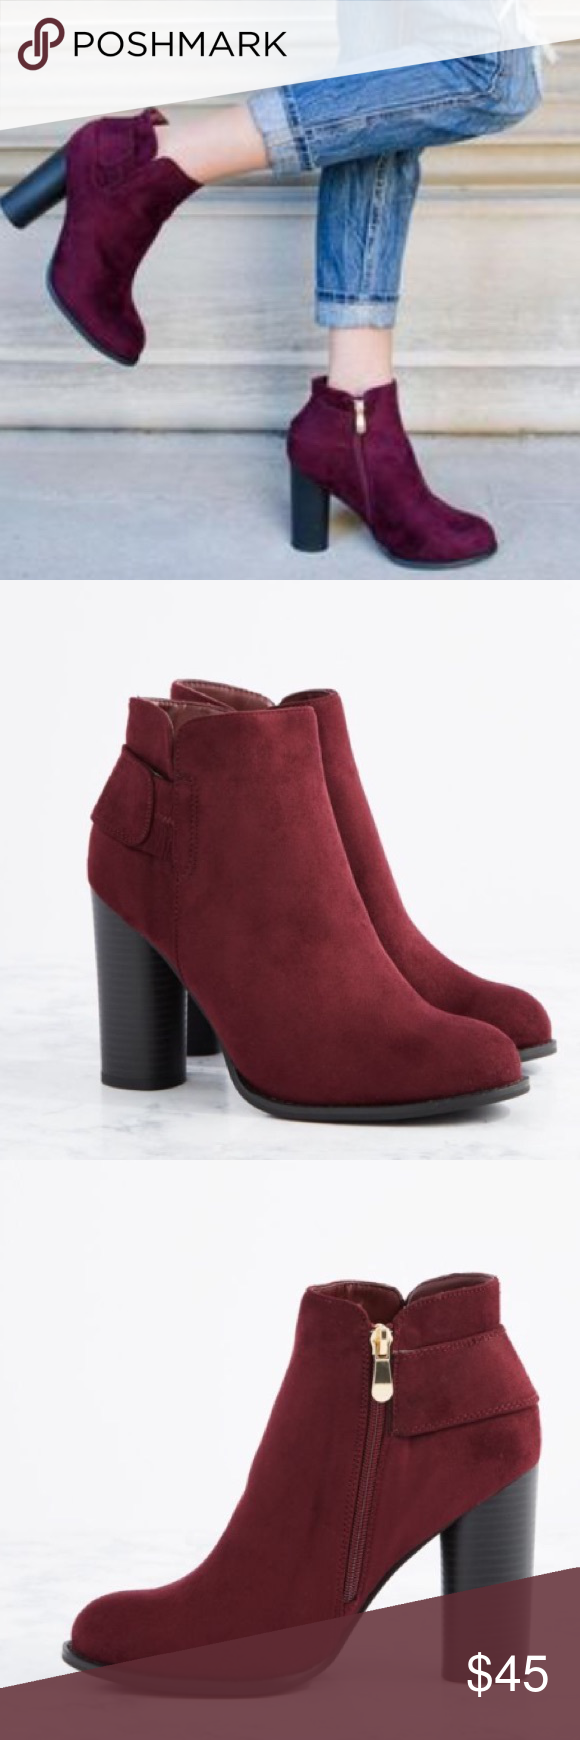 "🍷Wine Colored Chunky Ankle Suede Short Booties 🍷Wine Colored Chunky Stacked Block Wedge Ankle Suede Short Booties with wrap around Detail. Fits true to size. 4.25"" heel. Cushioned insole. Zip closure. Shoes Ankle Boots & Booties"